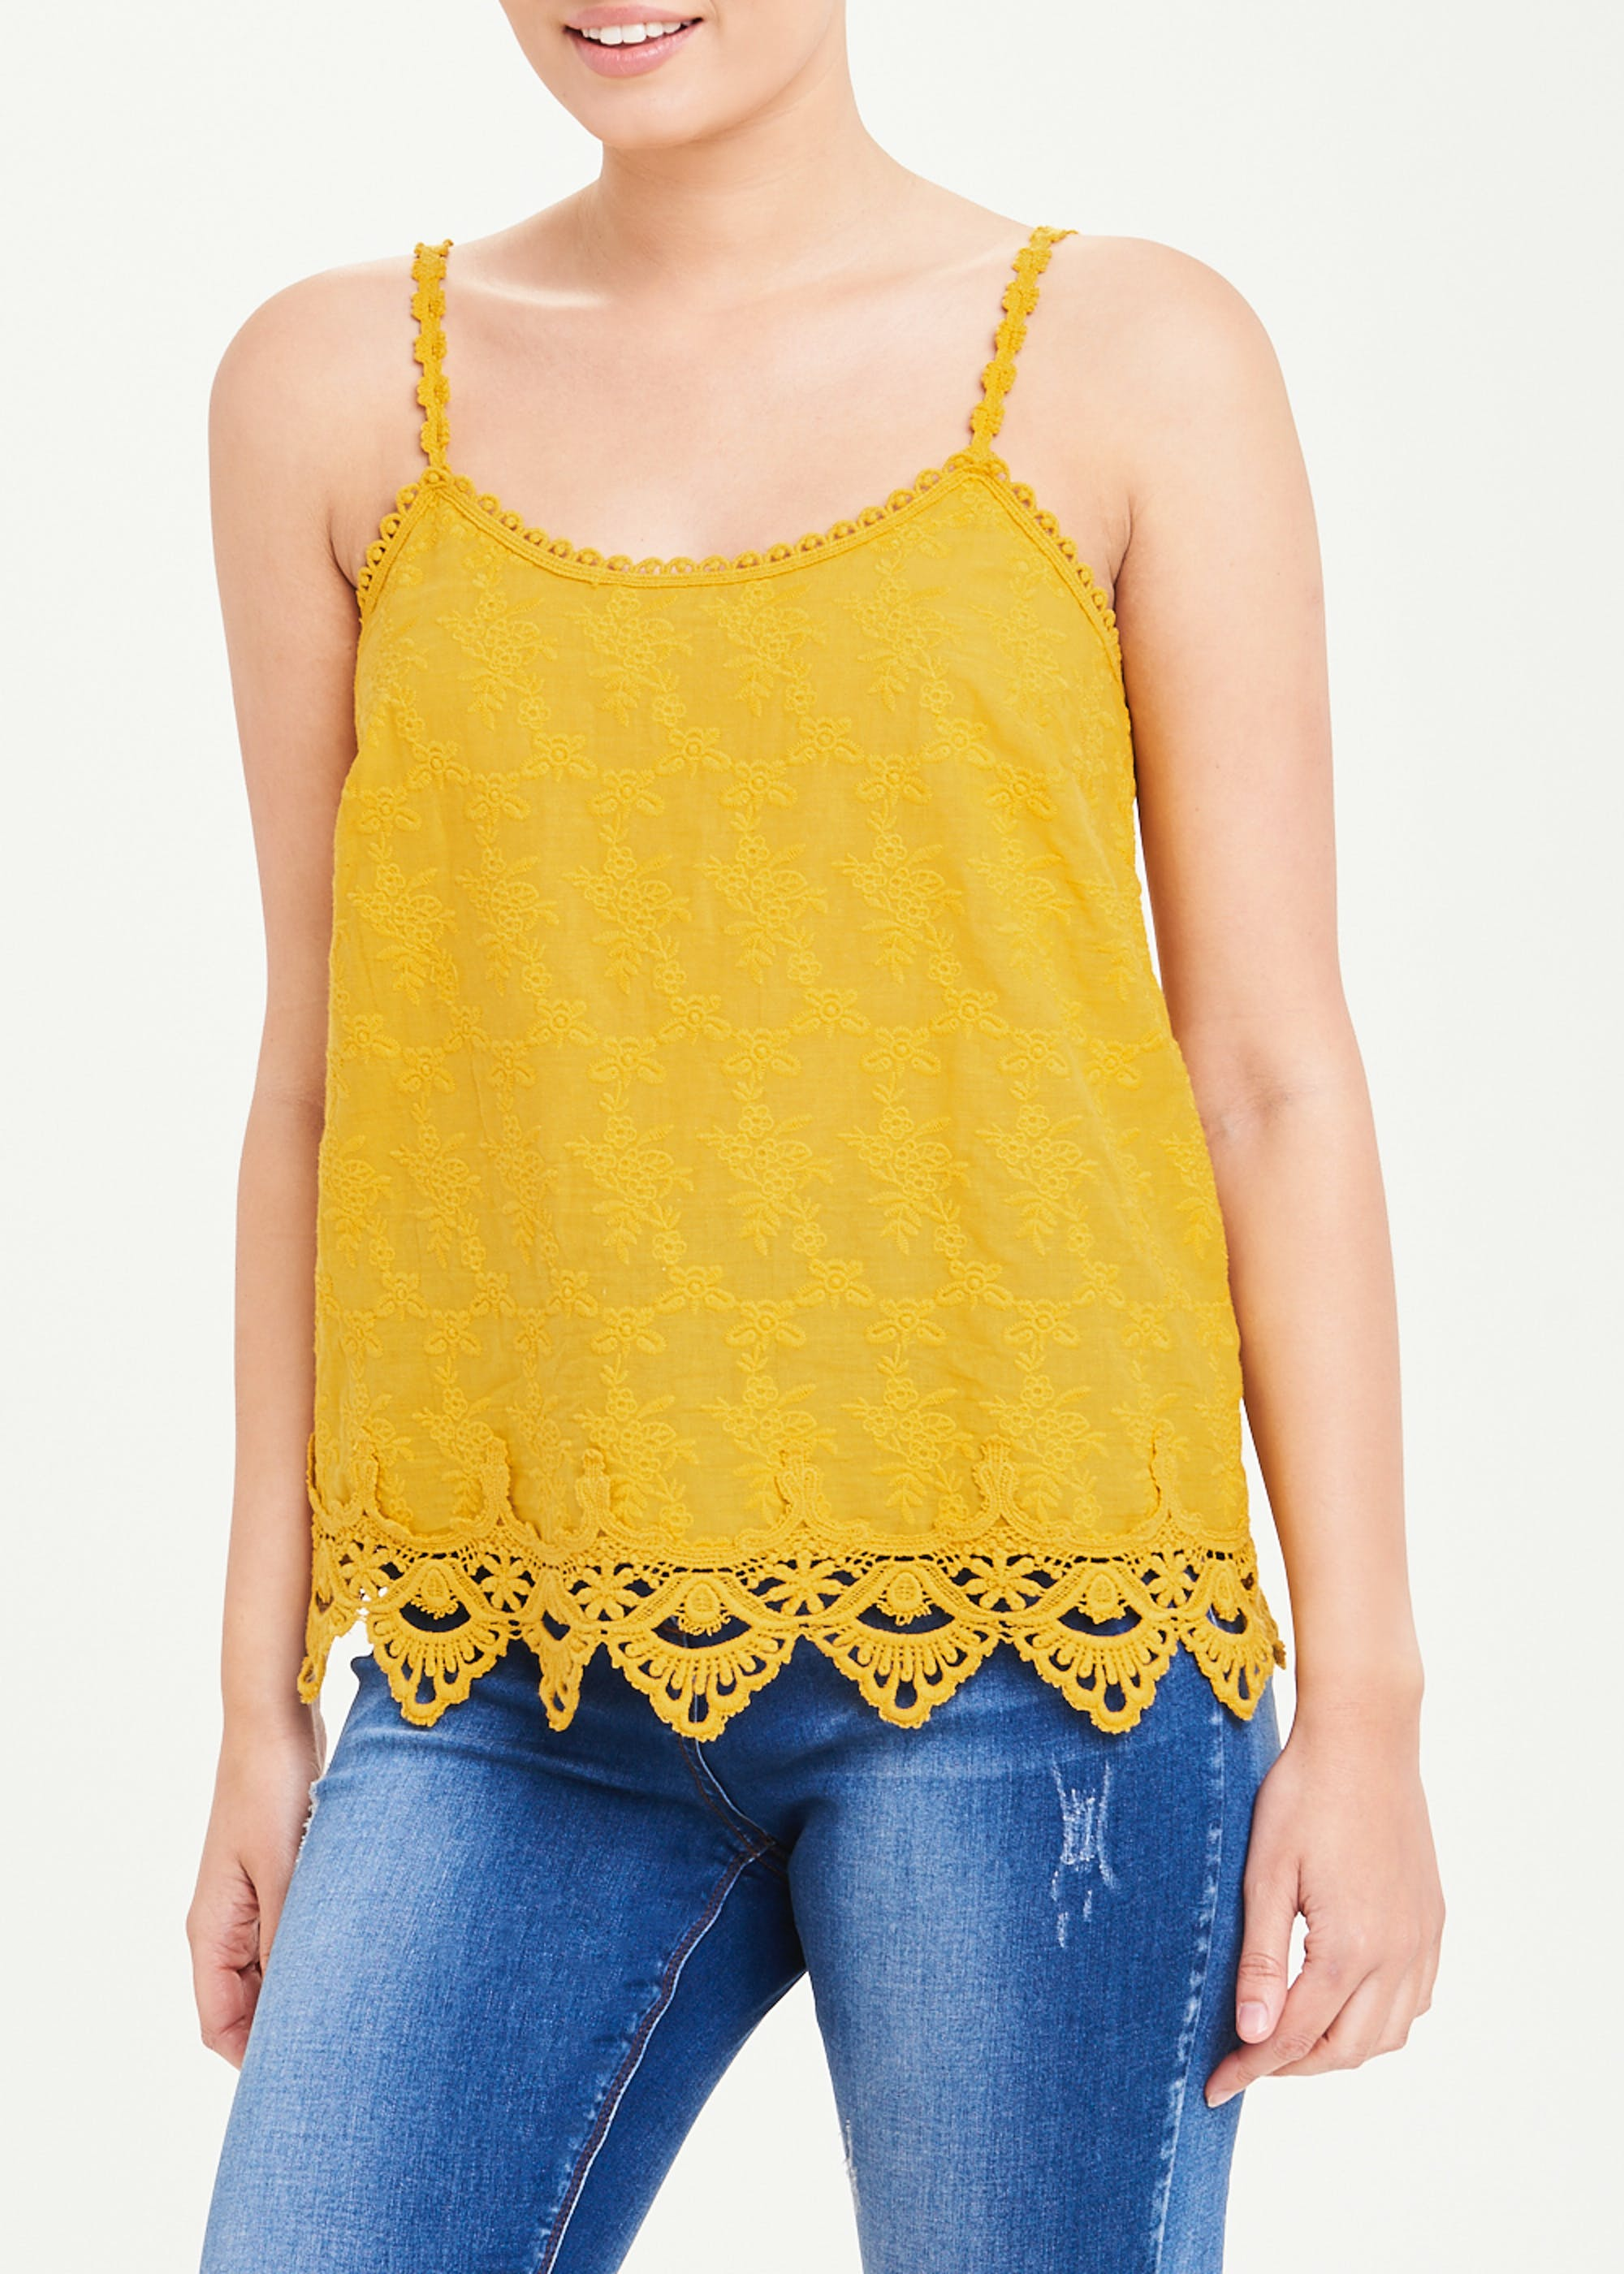 Falmer Embroidered Lace Trim Cami Top Yellow 3iq4rE